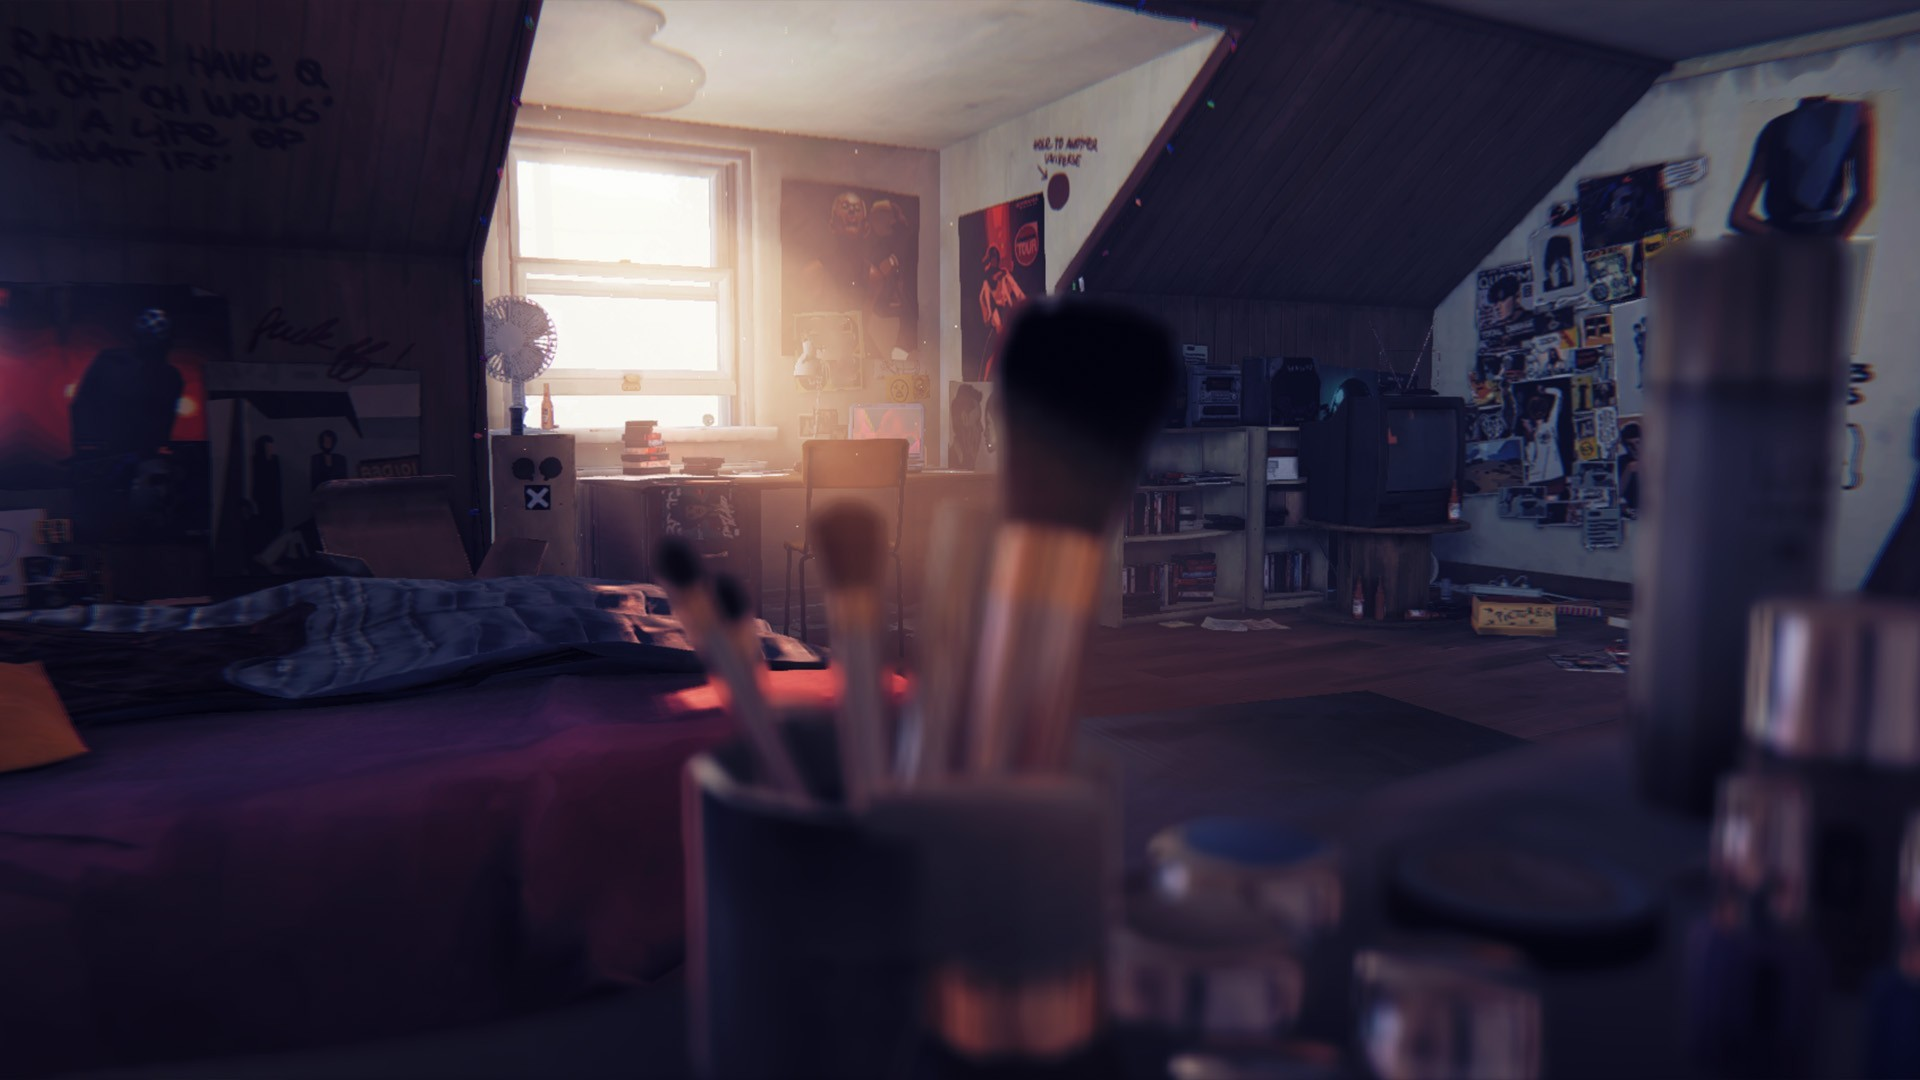 Corey hill lifeisstrange 02